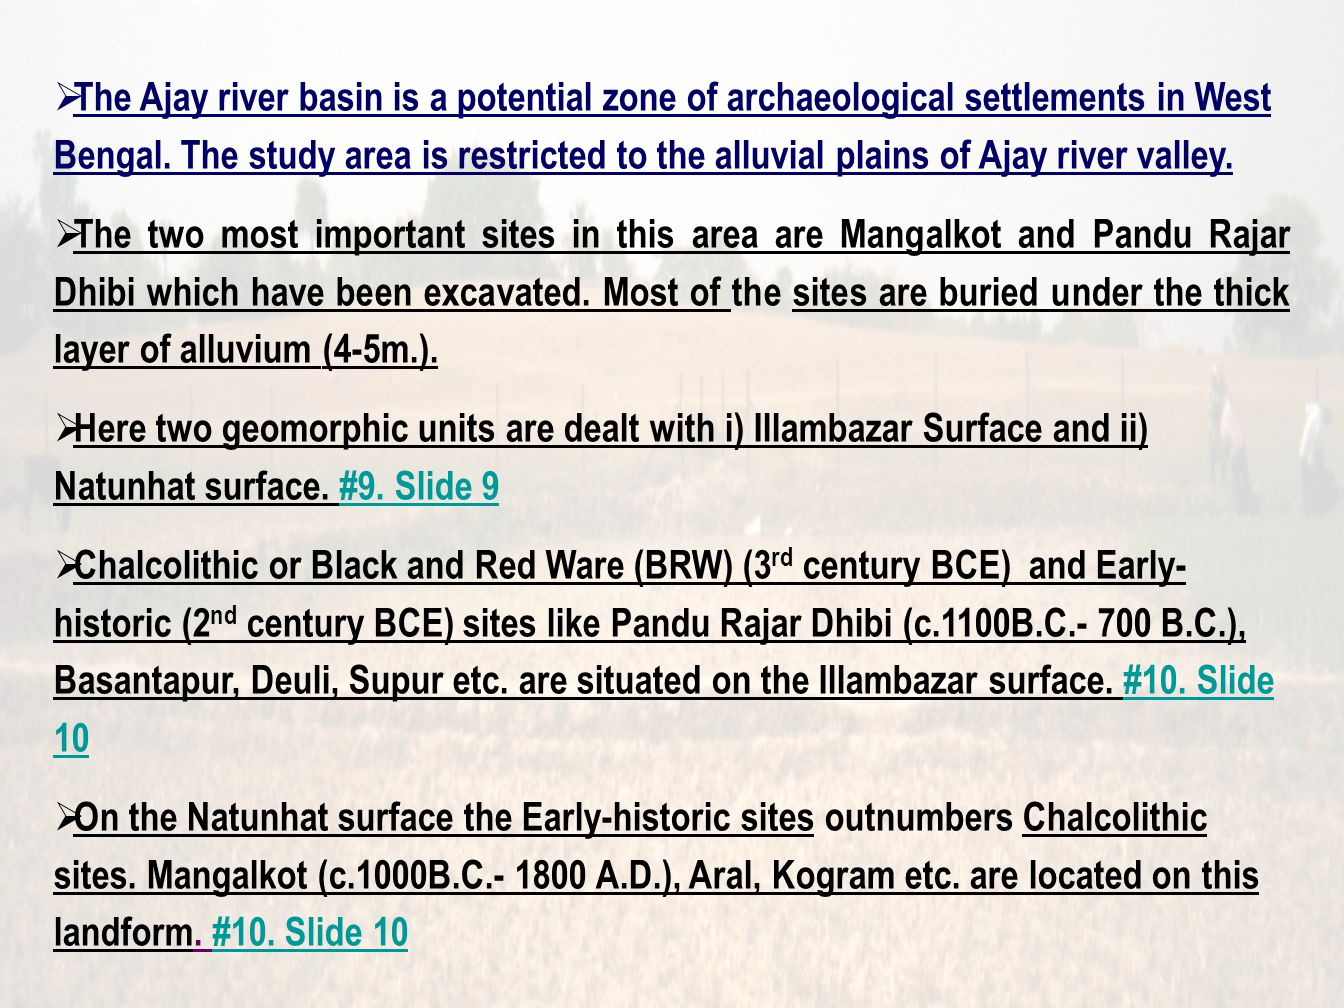 GEOMORPHOLOGICAL FEATURES OF THE AJAY RIVER VALLEY The Study Region belongs to a transitional zone between the Chottanagpur Plateau and the Bengal River Basin.